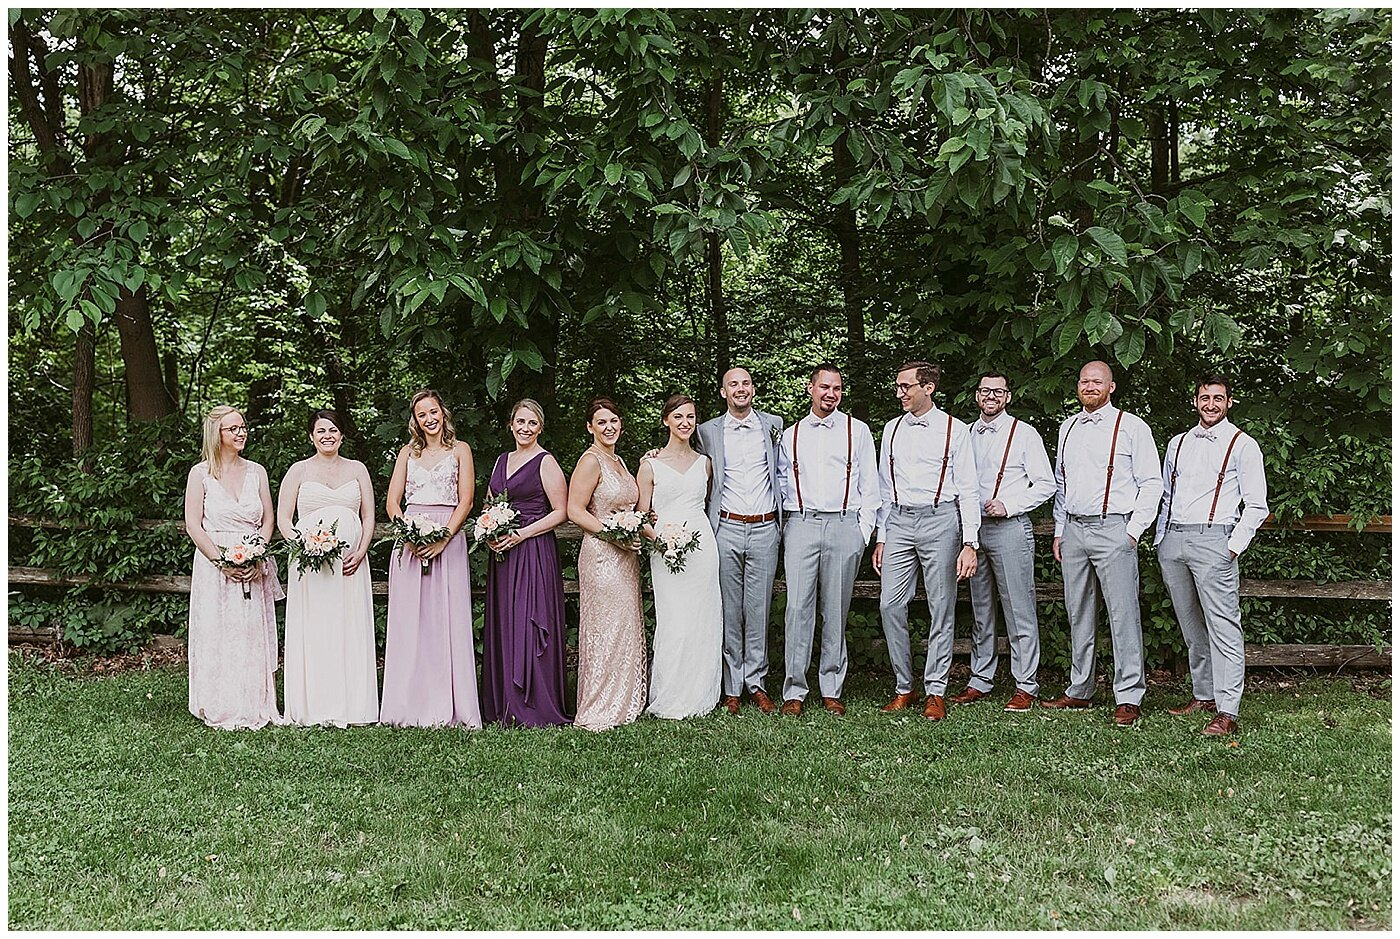 Matt+Katie_WEDDING_MJPHOTO2019-201.jpg